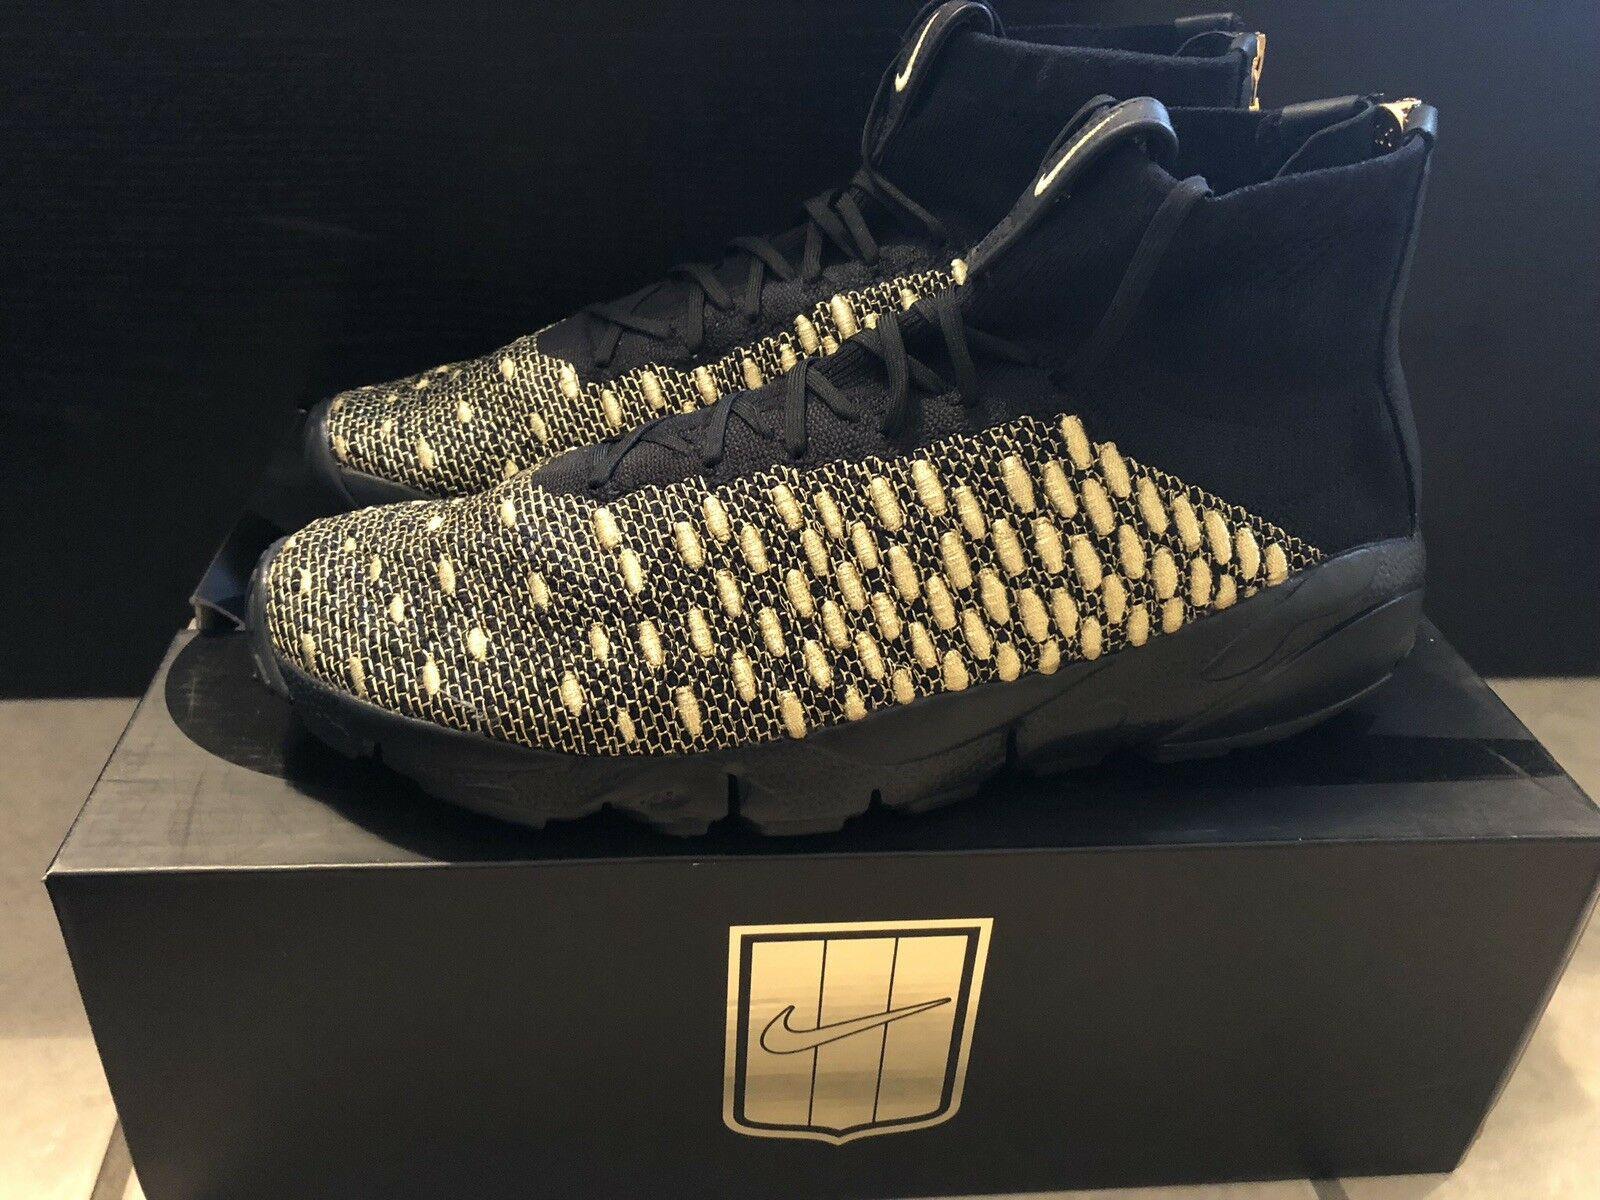 Nike Air Footscape Magista QS Lion OR Size Men's 10 [834905-007] Balmain